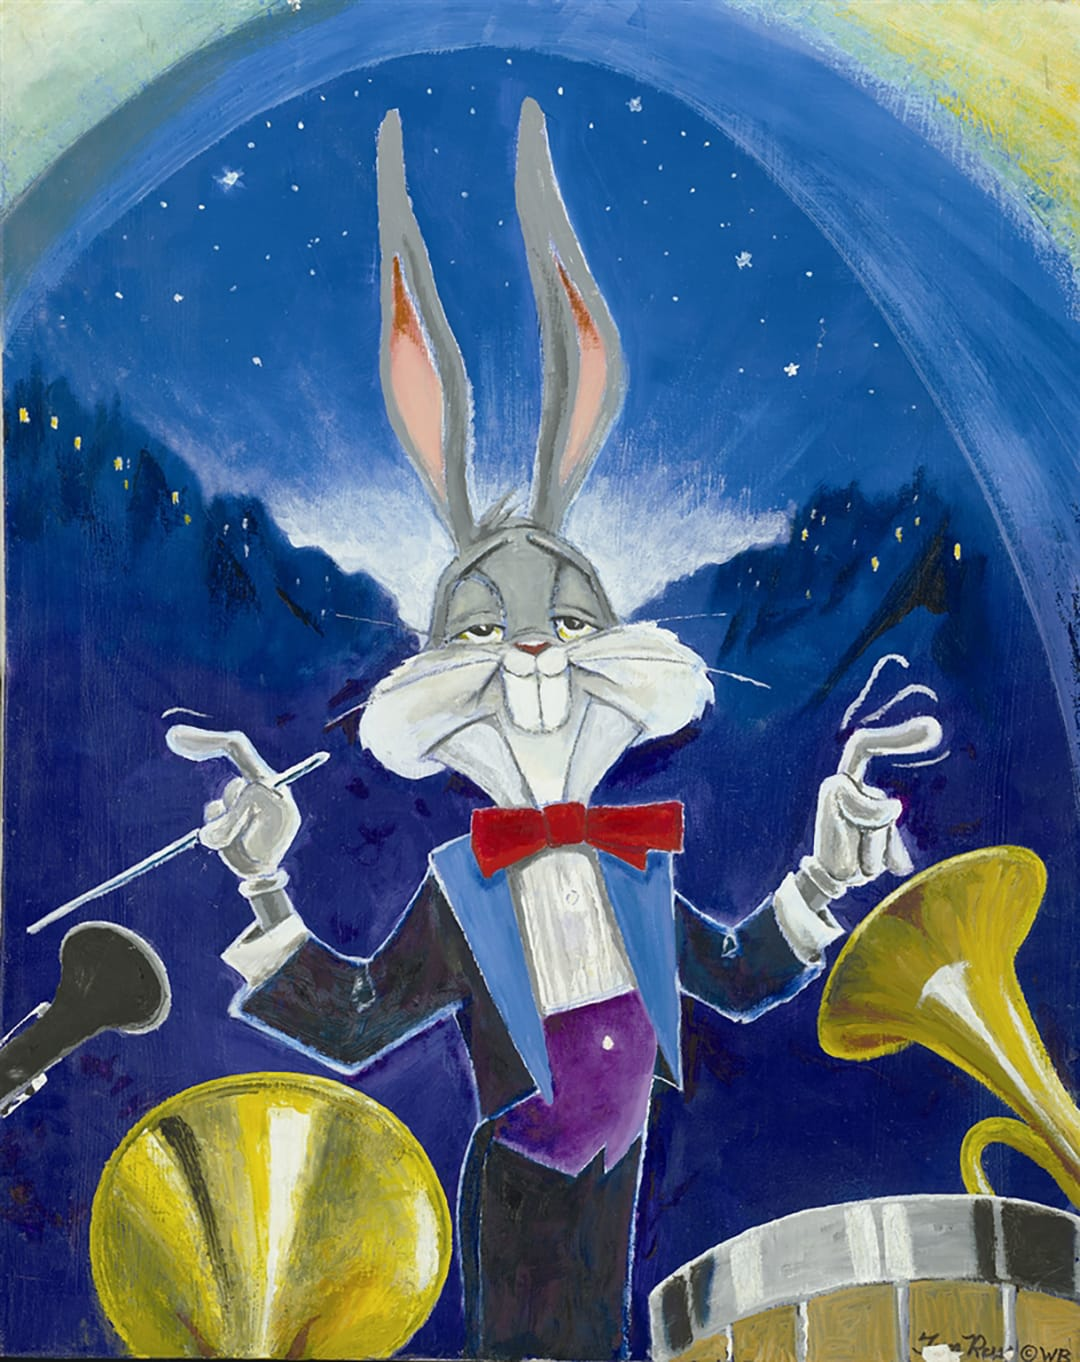 Bugs Bunny in a tuxedo conducting an orchestra